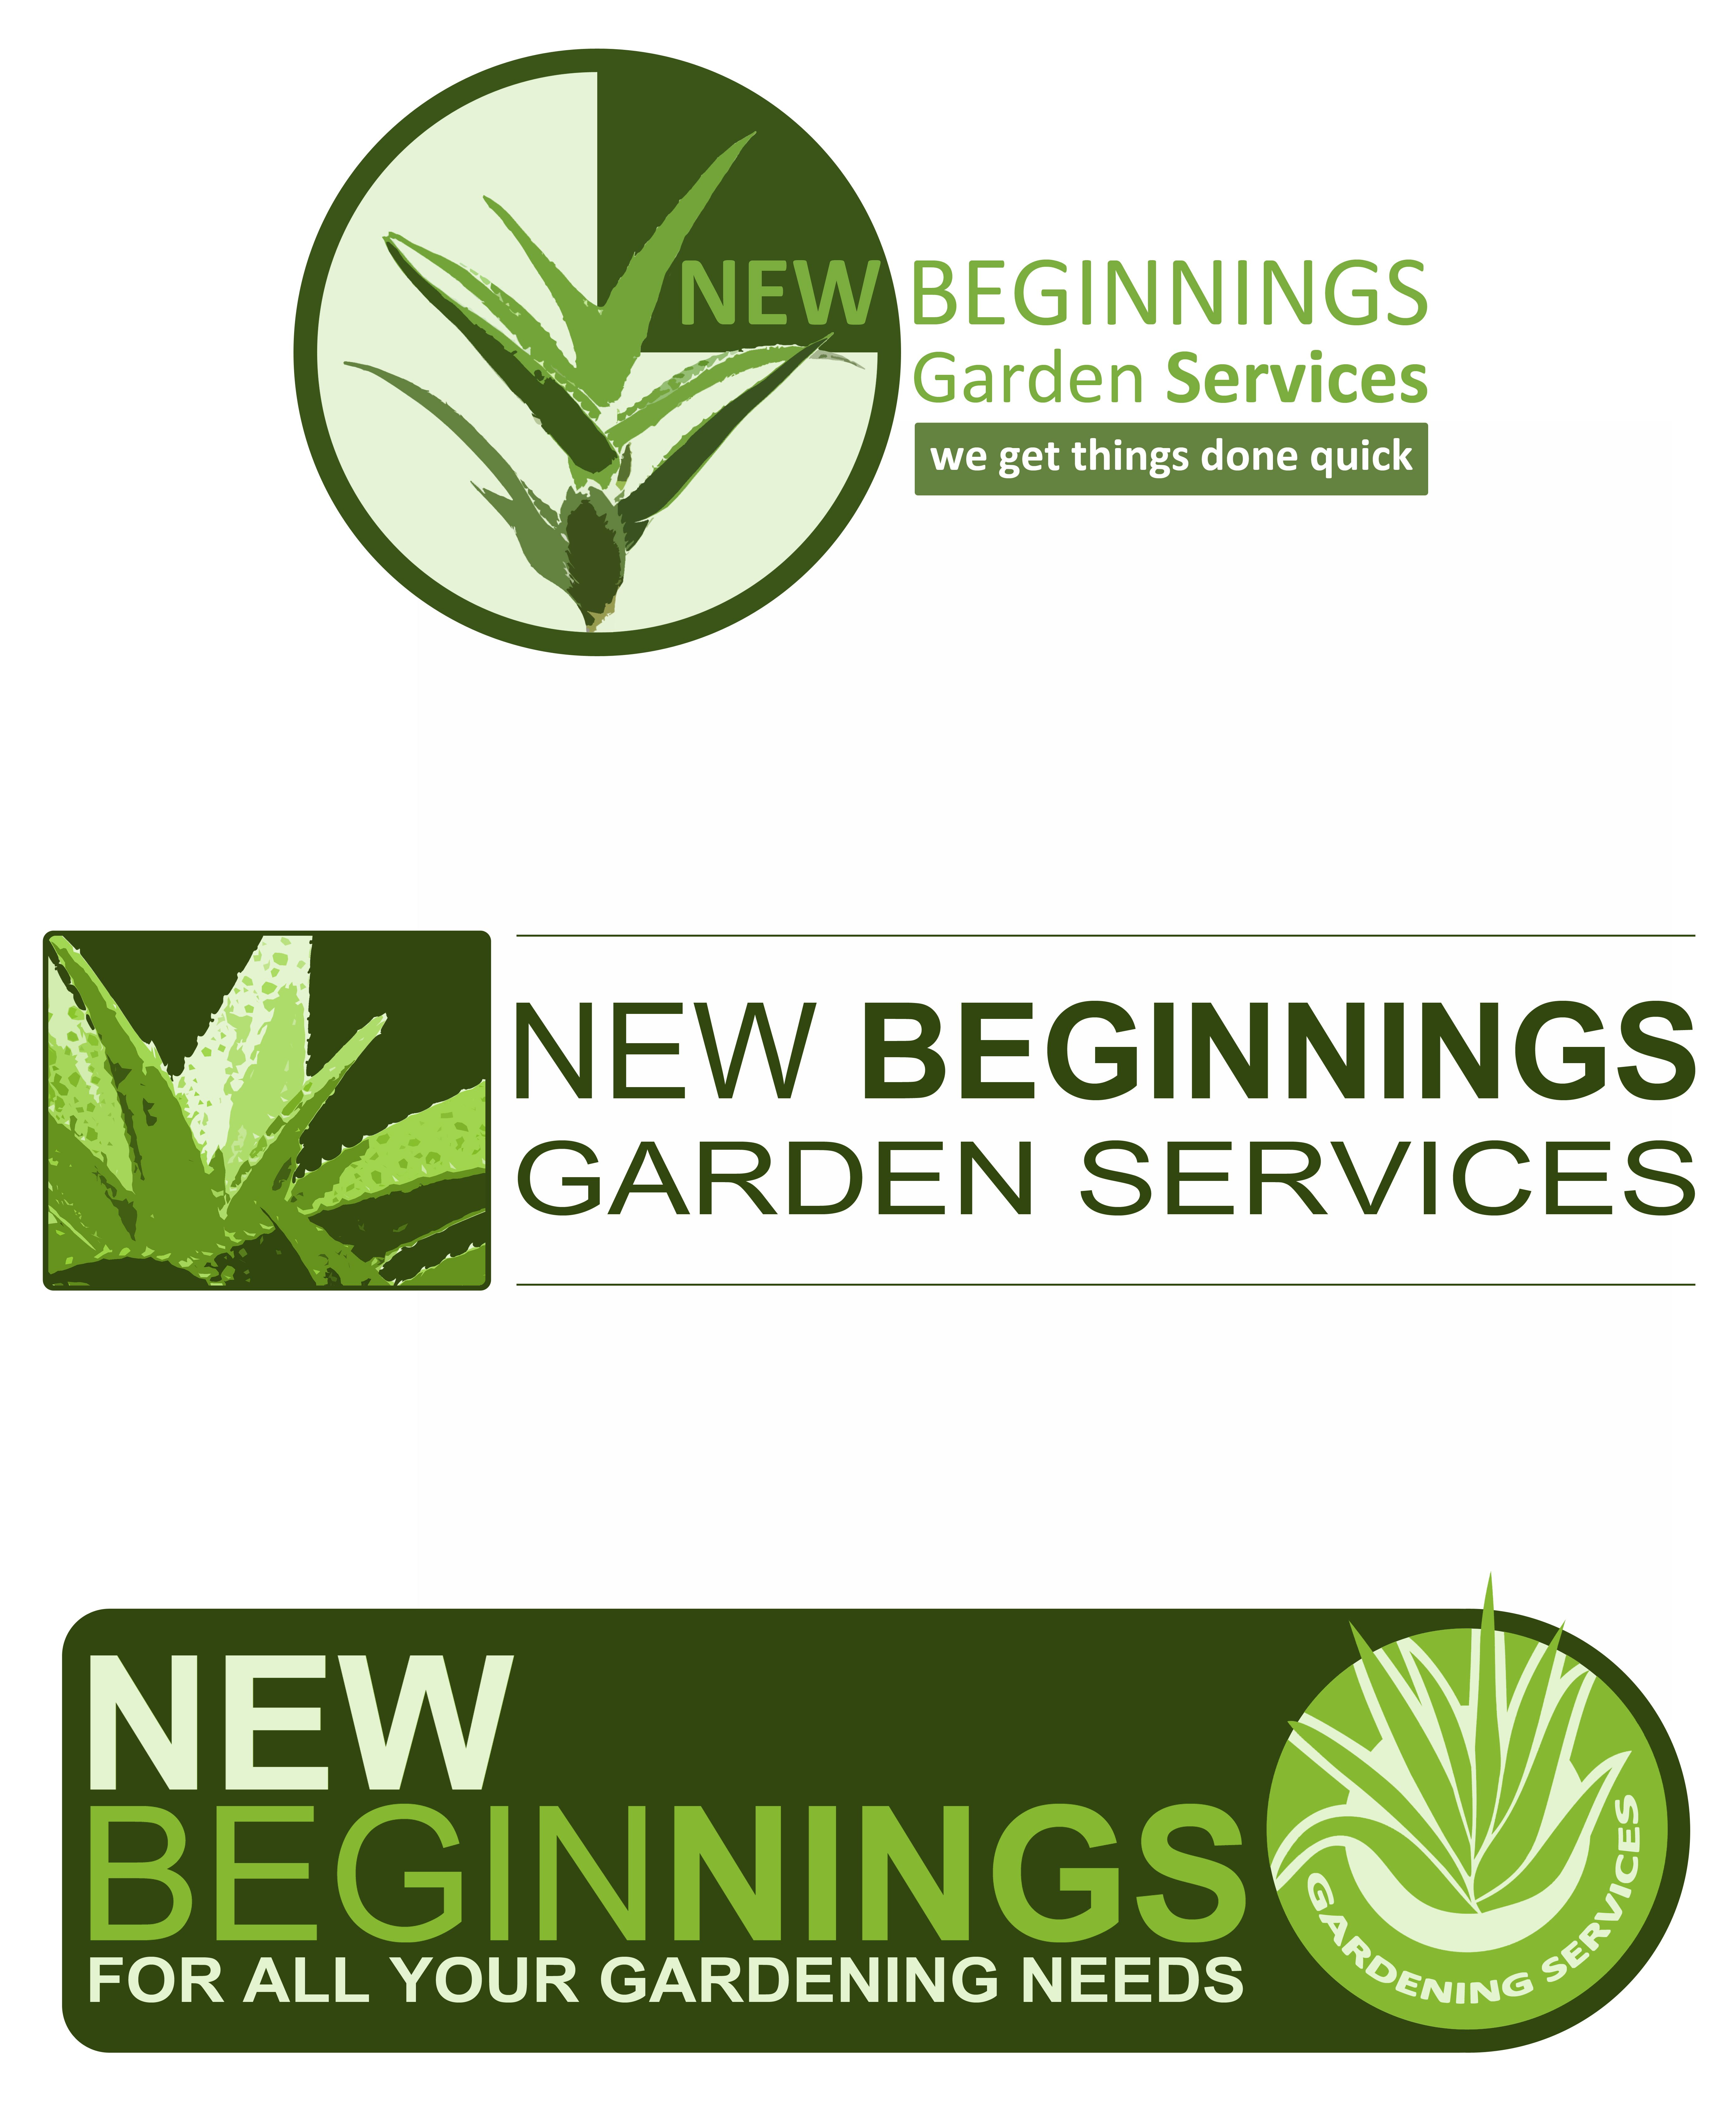 Design concepts for New Beginnings